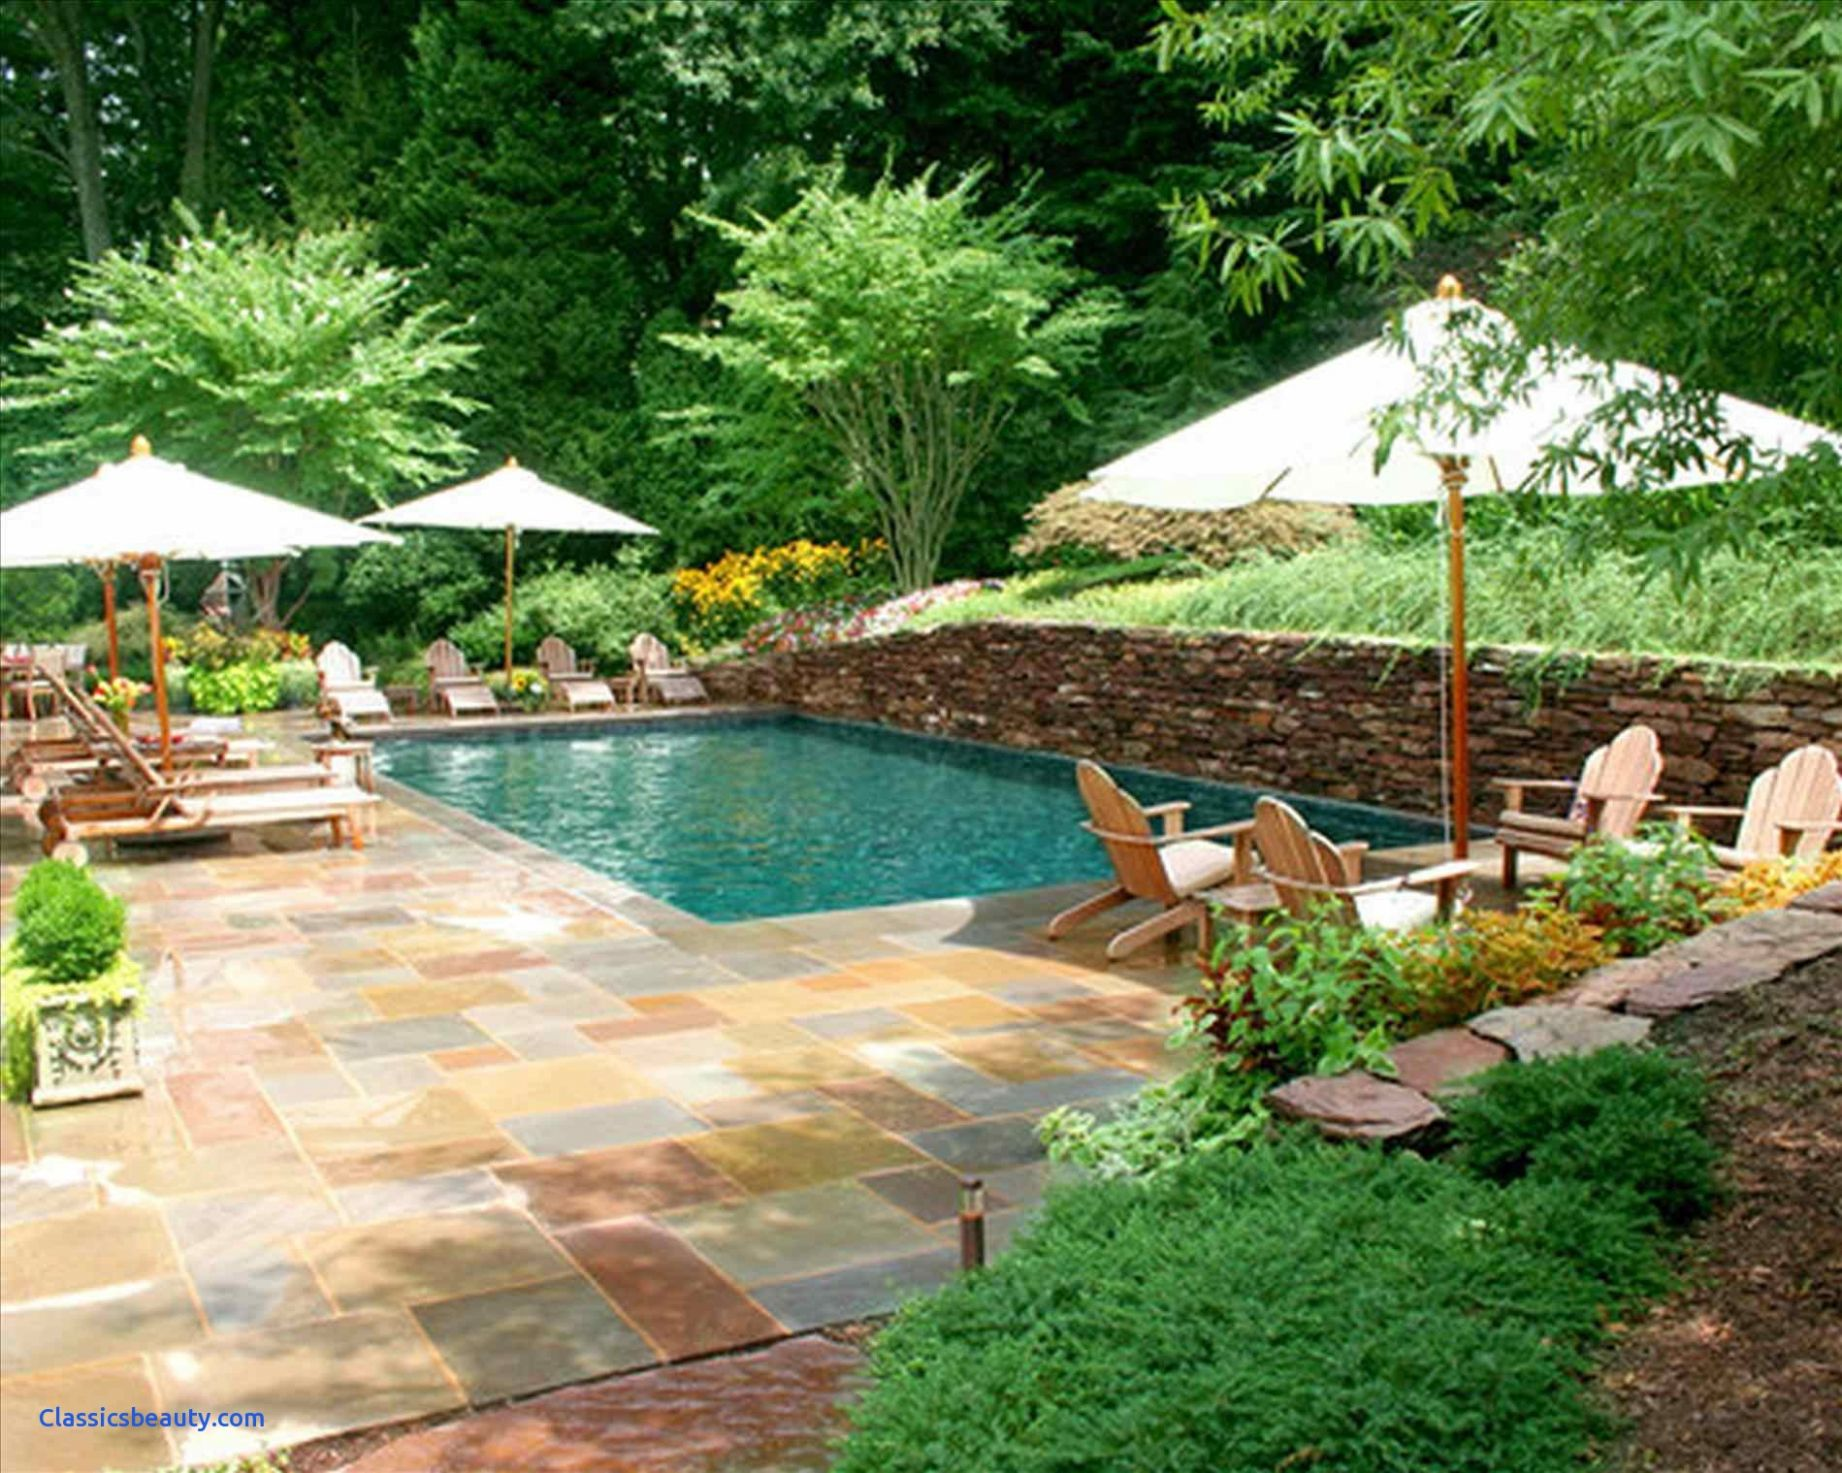 Backyard Spa Designs Unique Small Pool With Hot Tub Ideas Privacy ..